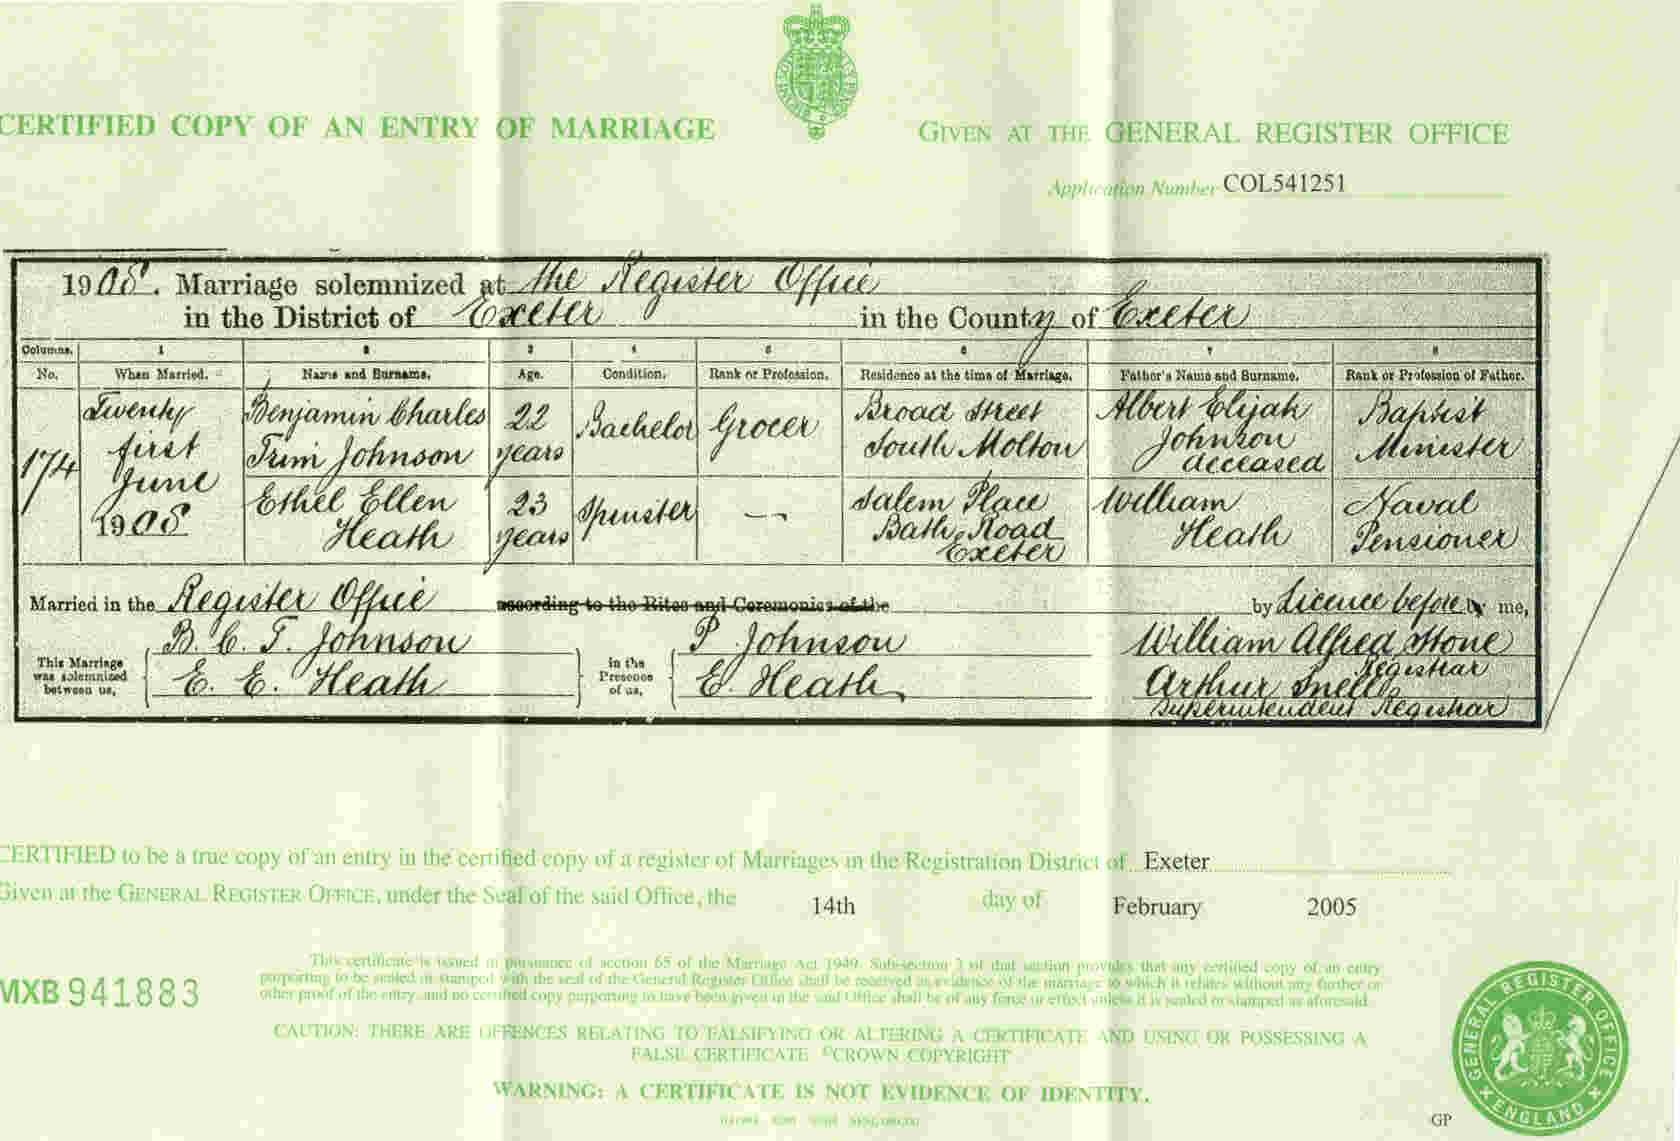 Johnson Heath marriage cert